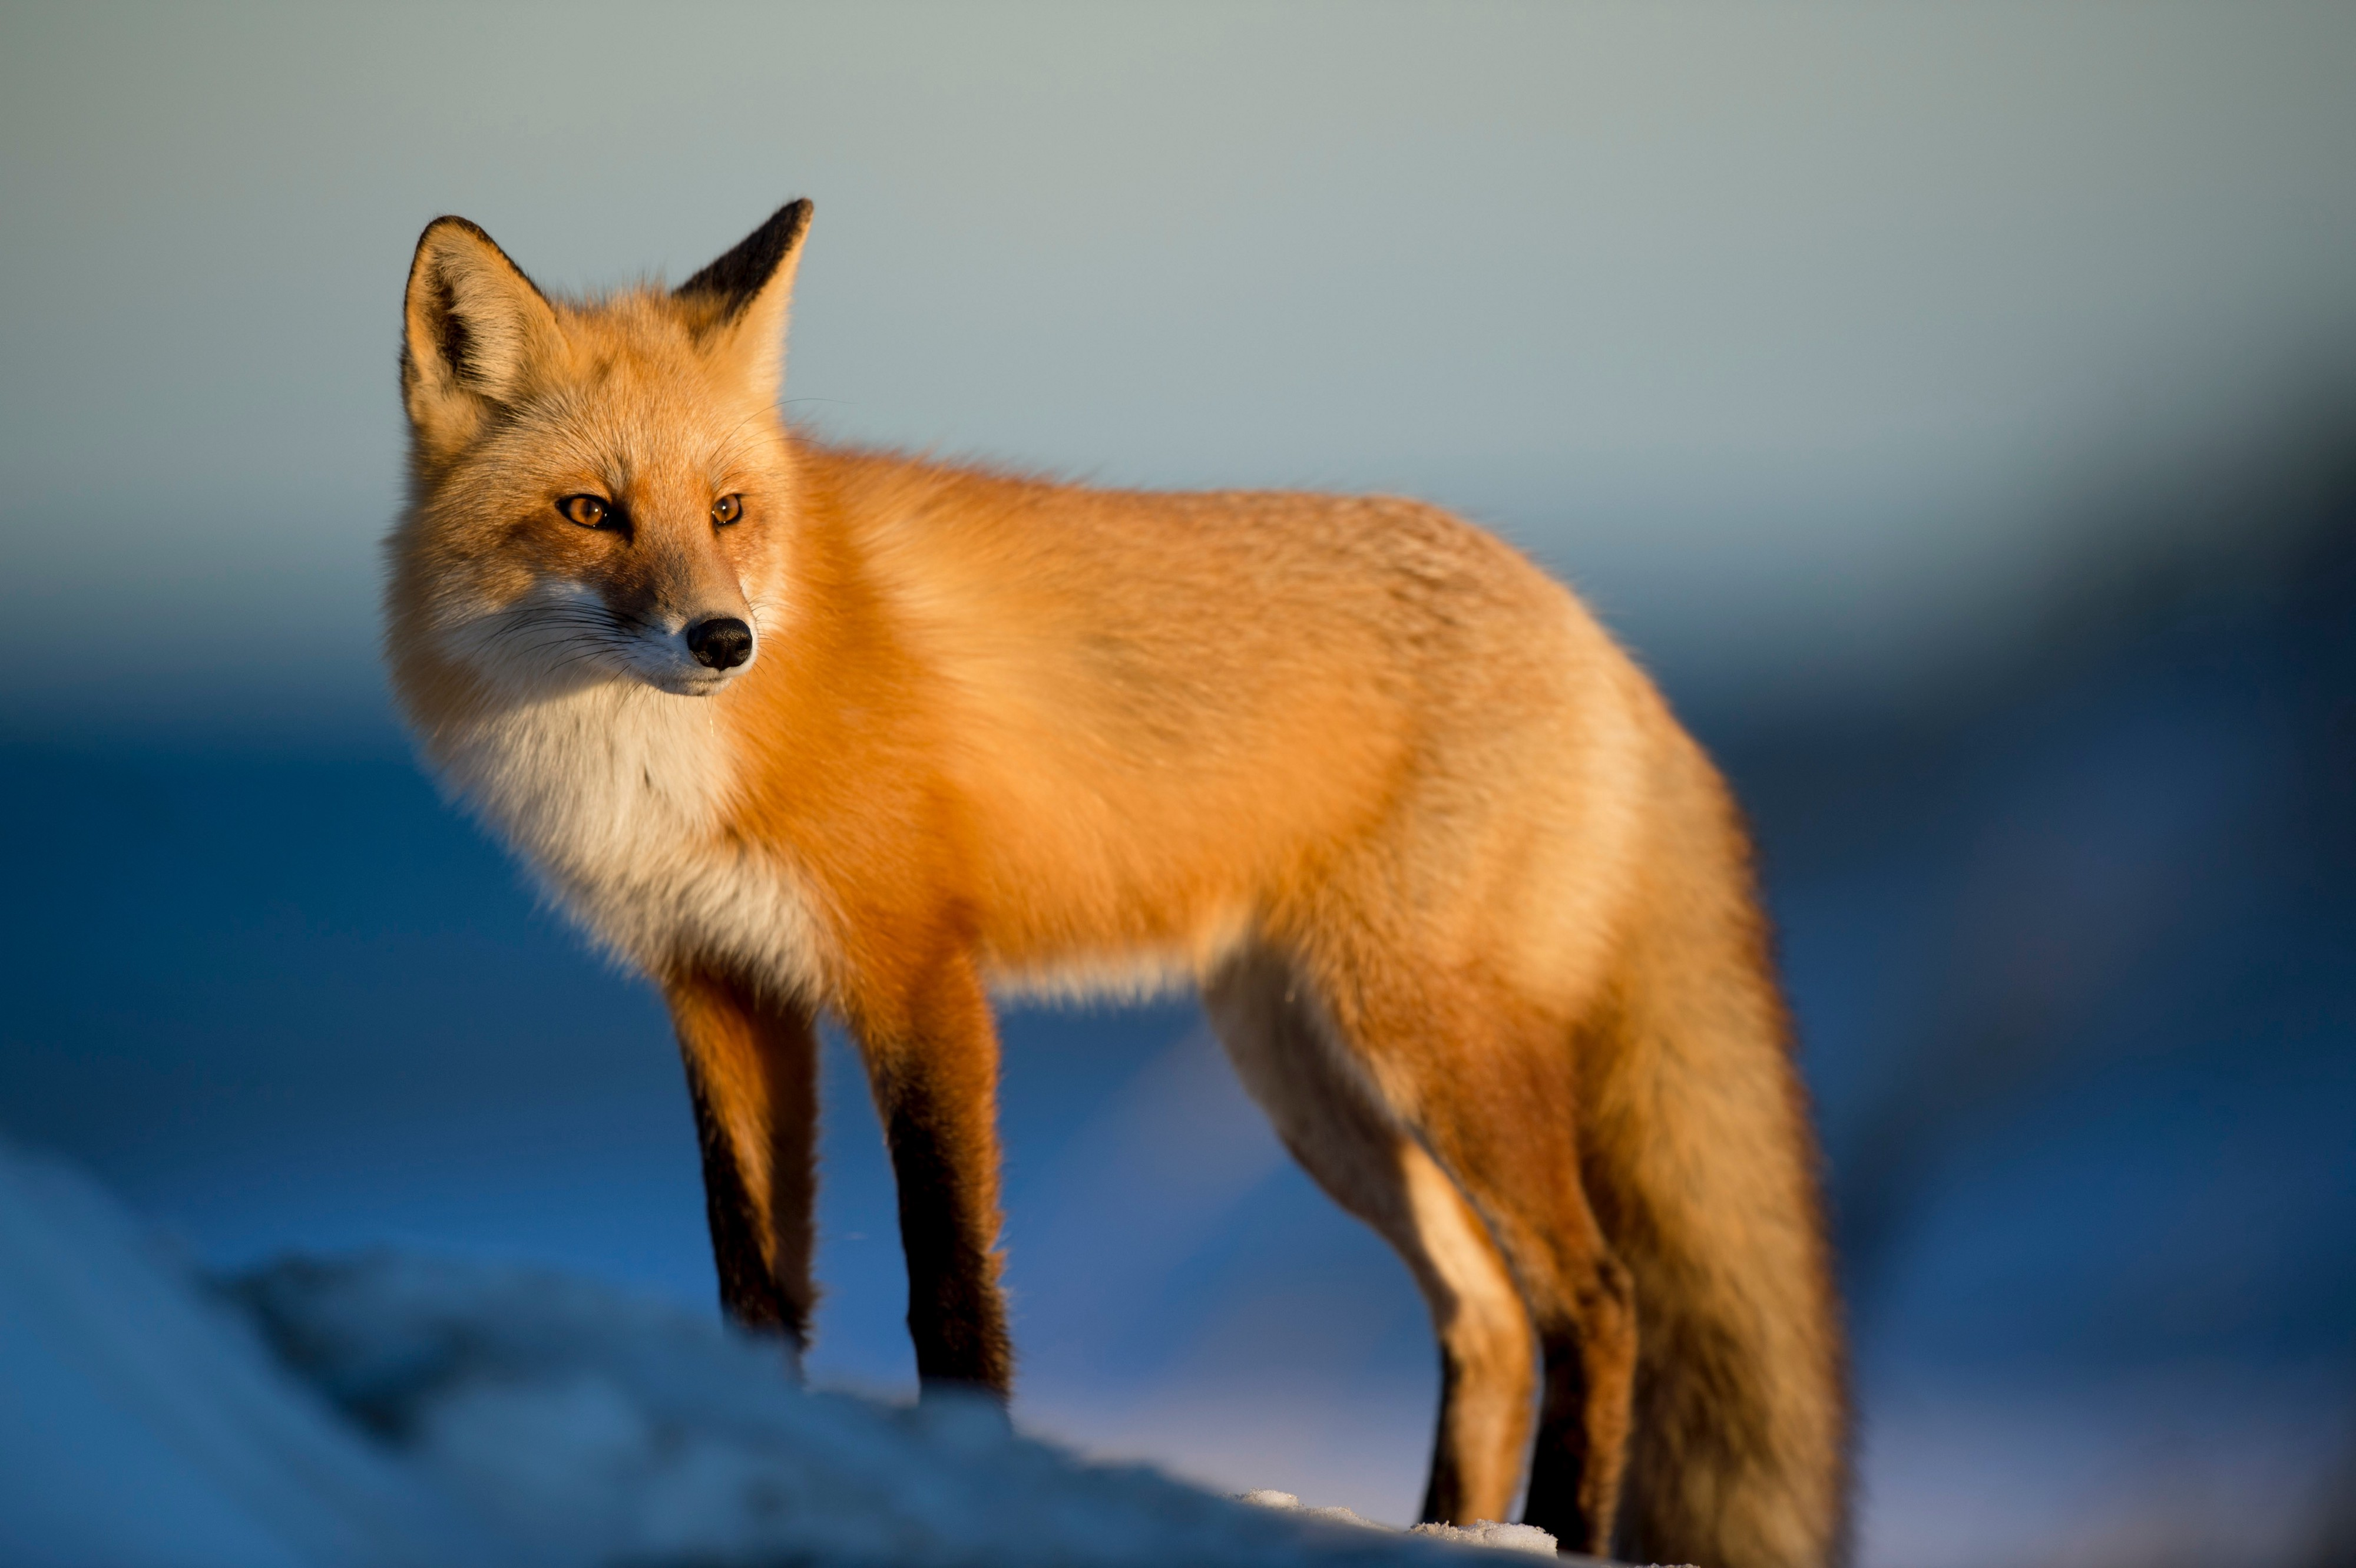 The Fox And The Crow A Society Teaches Children Being The Fox By Scott Douglas Jacobsen Humanist Voices Medium